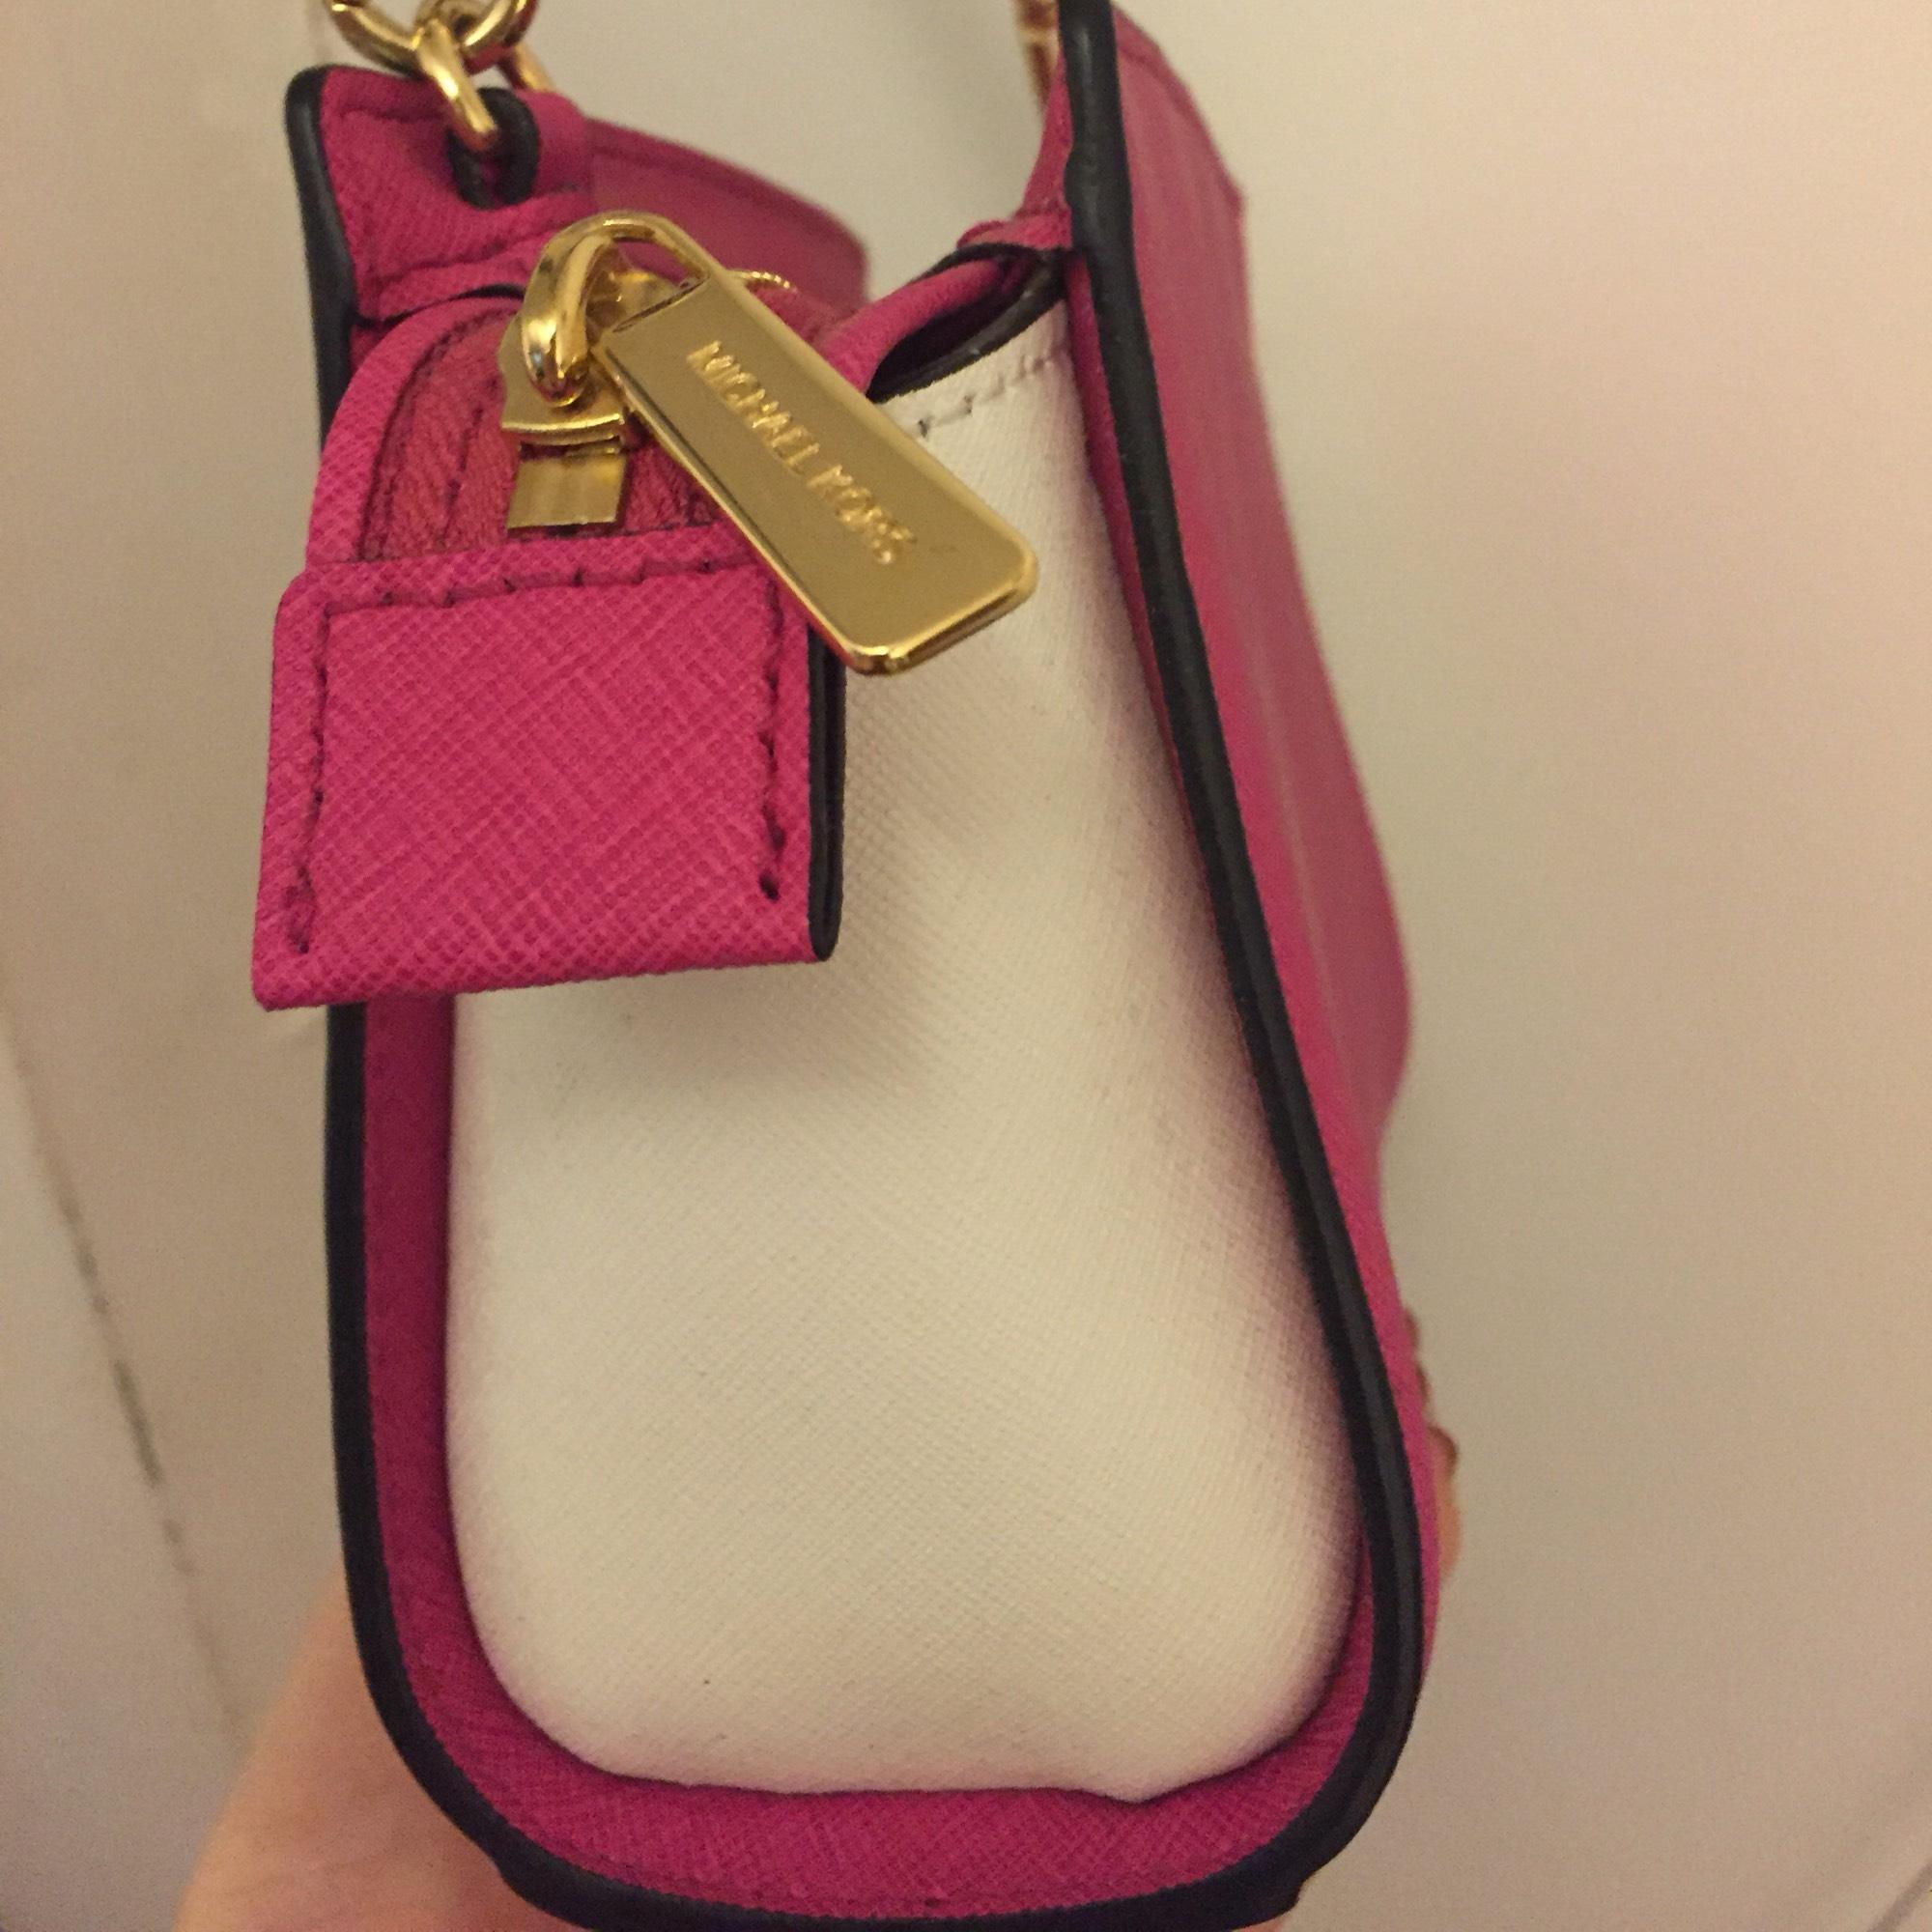 d77bcf83972e ... low price michael kors selma mini messenger hot pink white cross body bag  tradesy 898a6 1021c